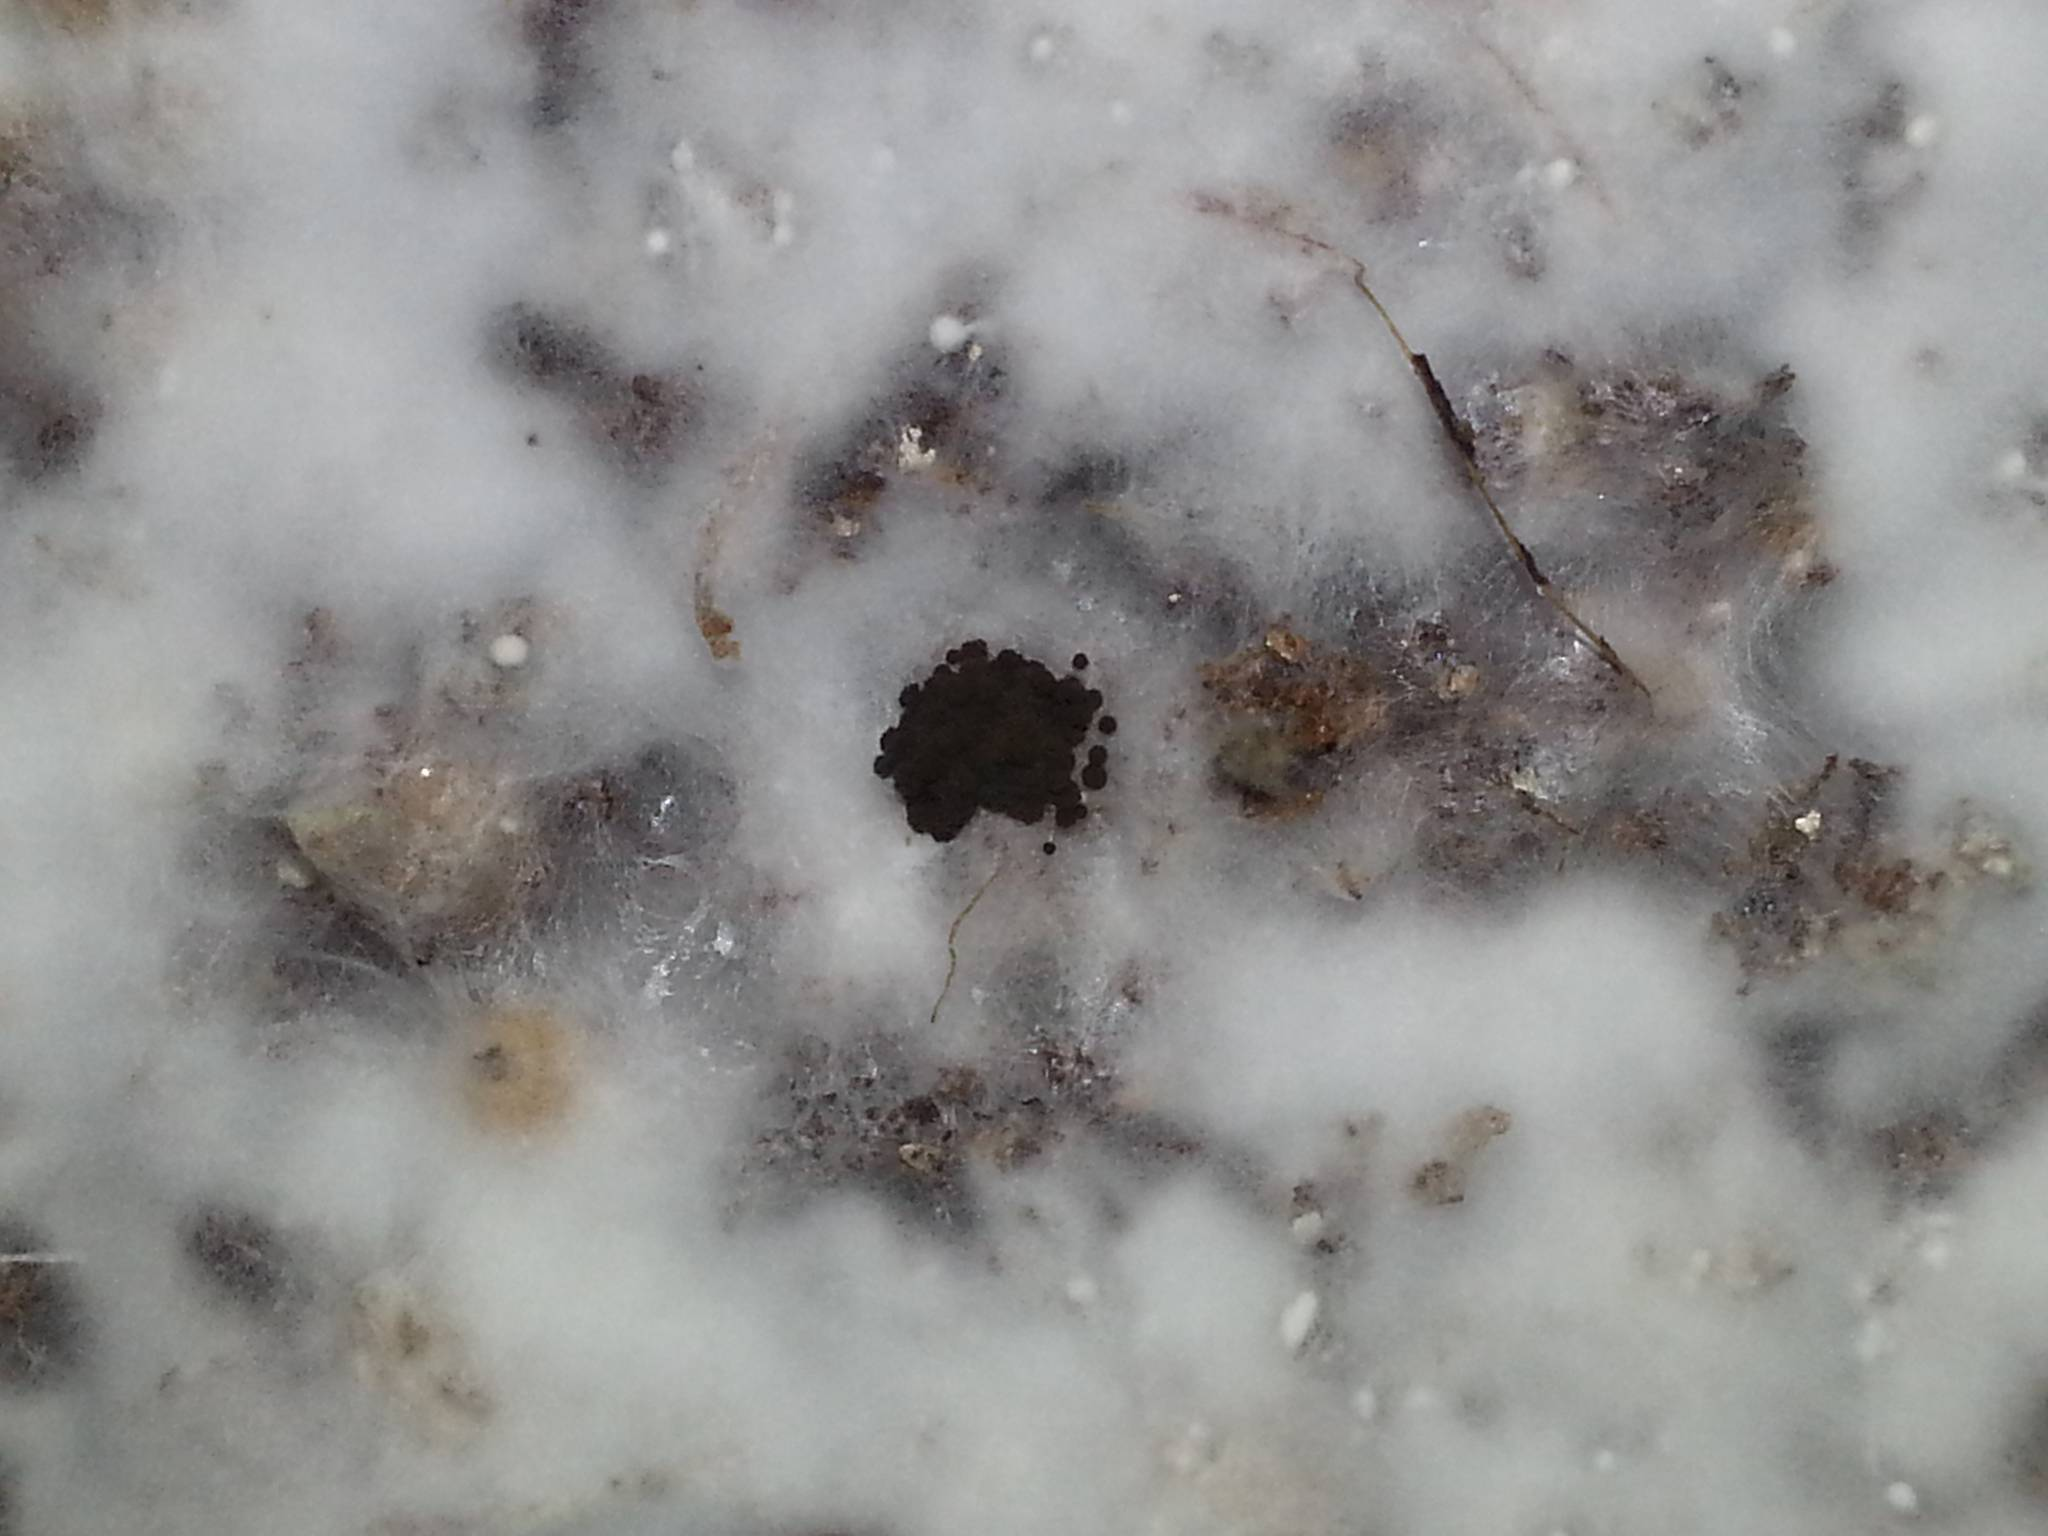 How to identify black mold - Hat Are These Small Black Dots They Don T Look Like Anything Ive Ever Seen It Looks Like A Little Pol Of Roach Poop Or Like Little Carbon Balls If You